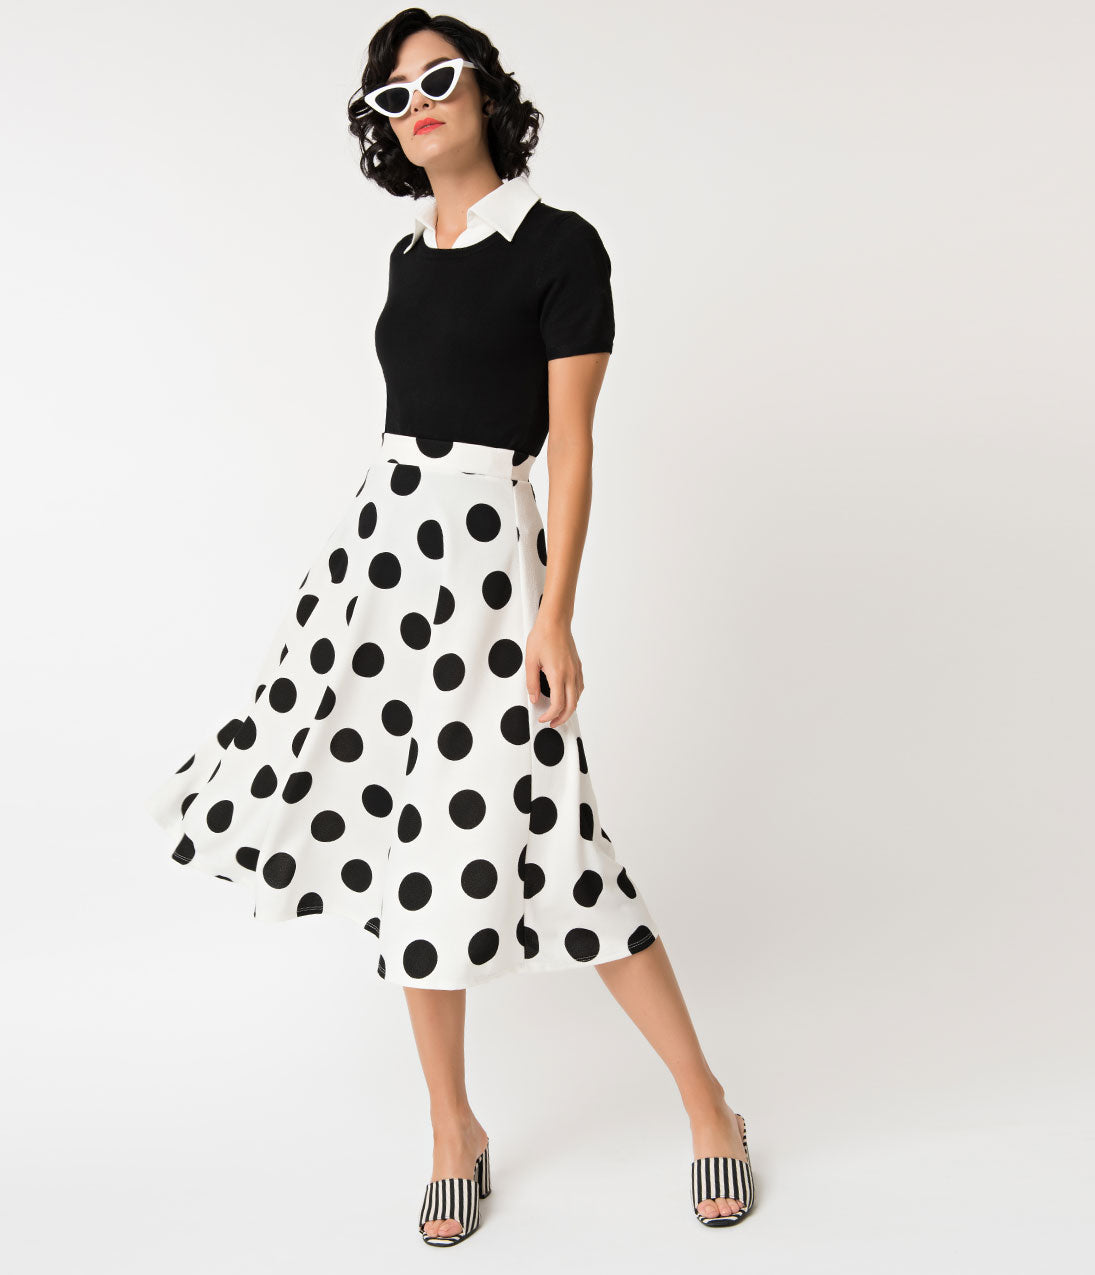 1950s Swing Skirt, Poodle Skirt, Pencil Skirts Retro Style Black  White Polka Dot High Waist Flare Skirt $32.00 AT vintagedancer.com